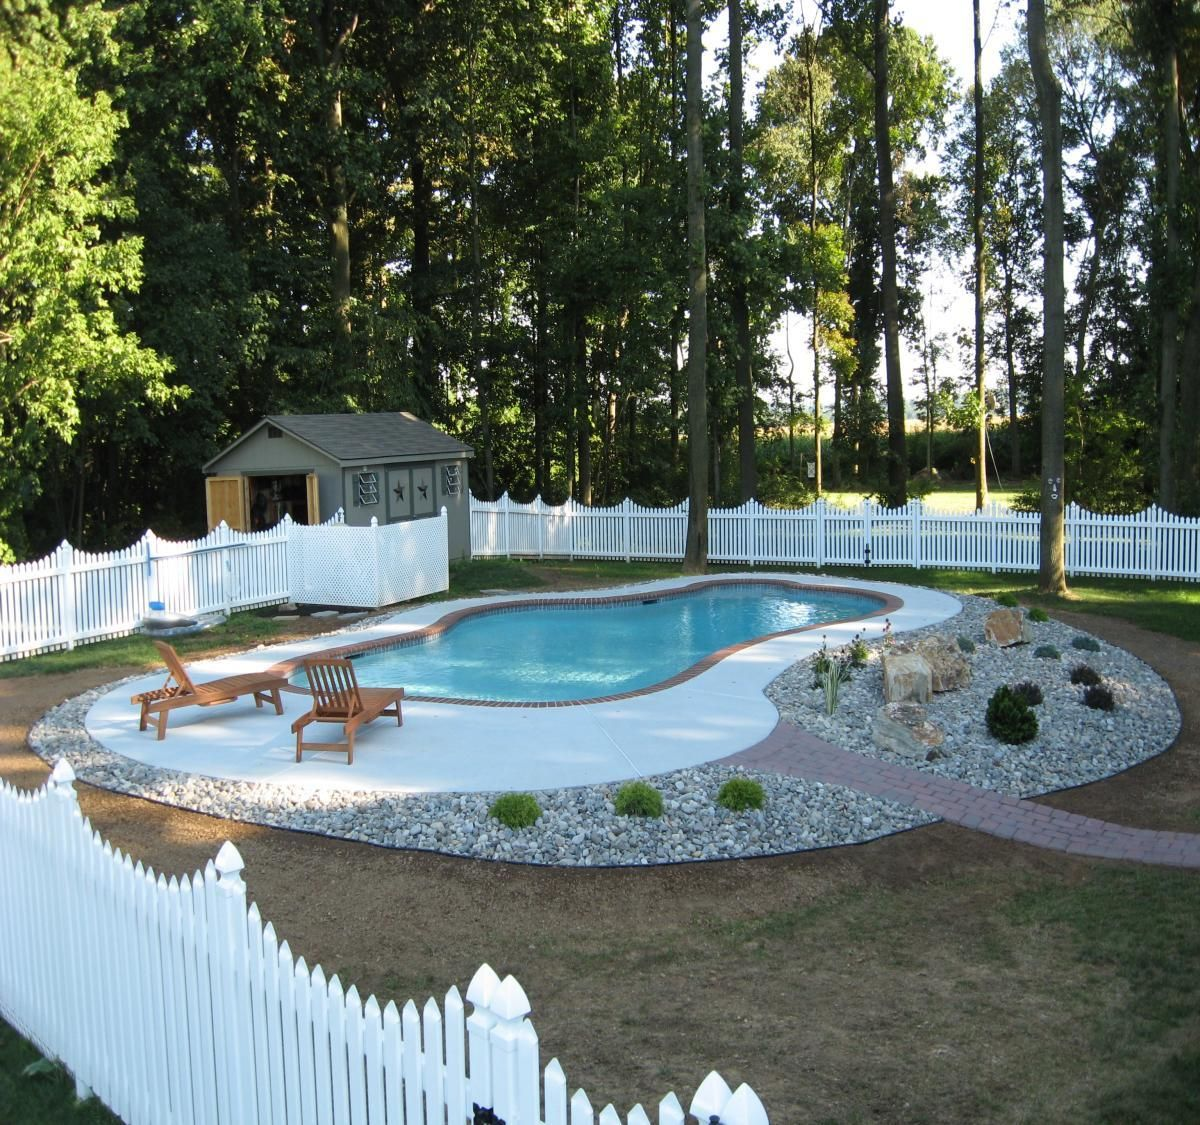 Low maintenance decorative pool design landscaping for Pool landscape design